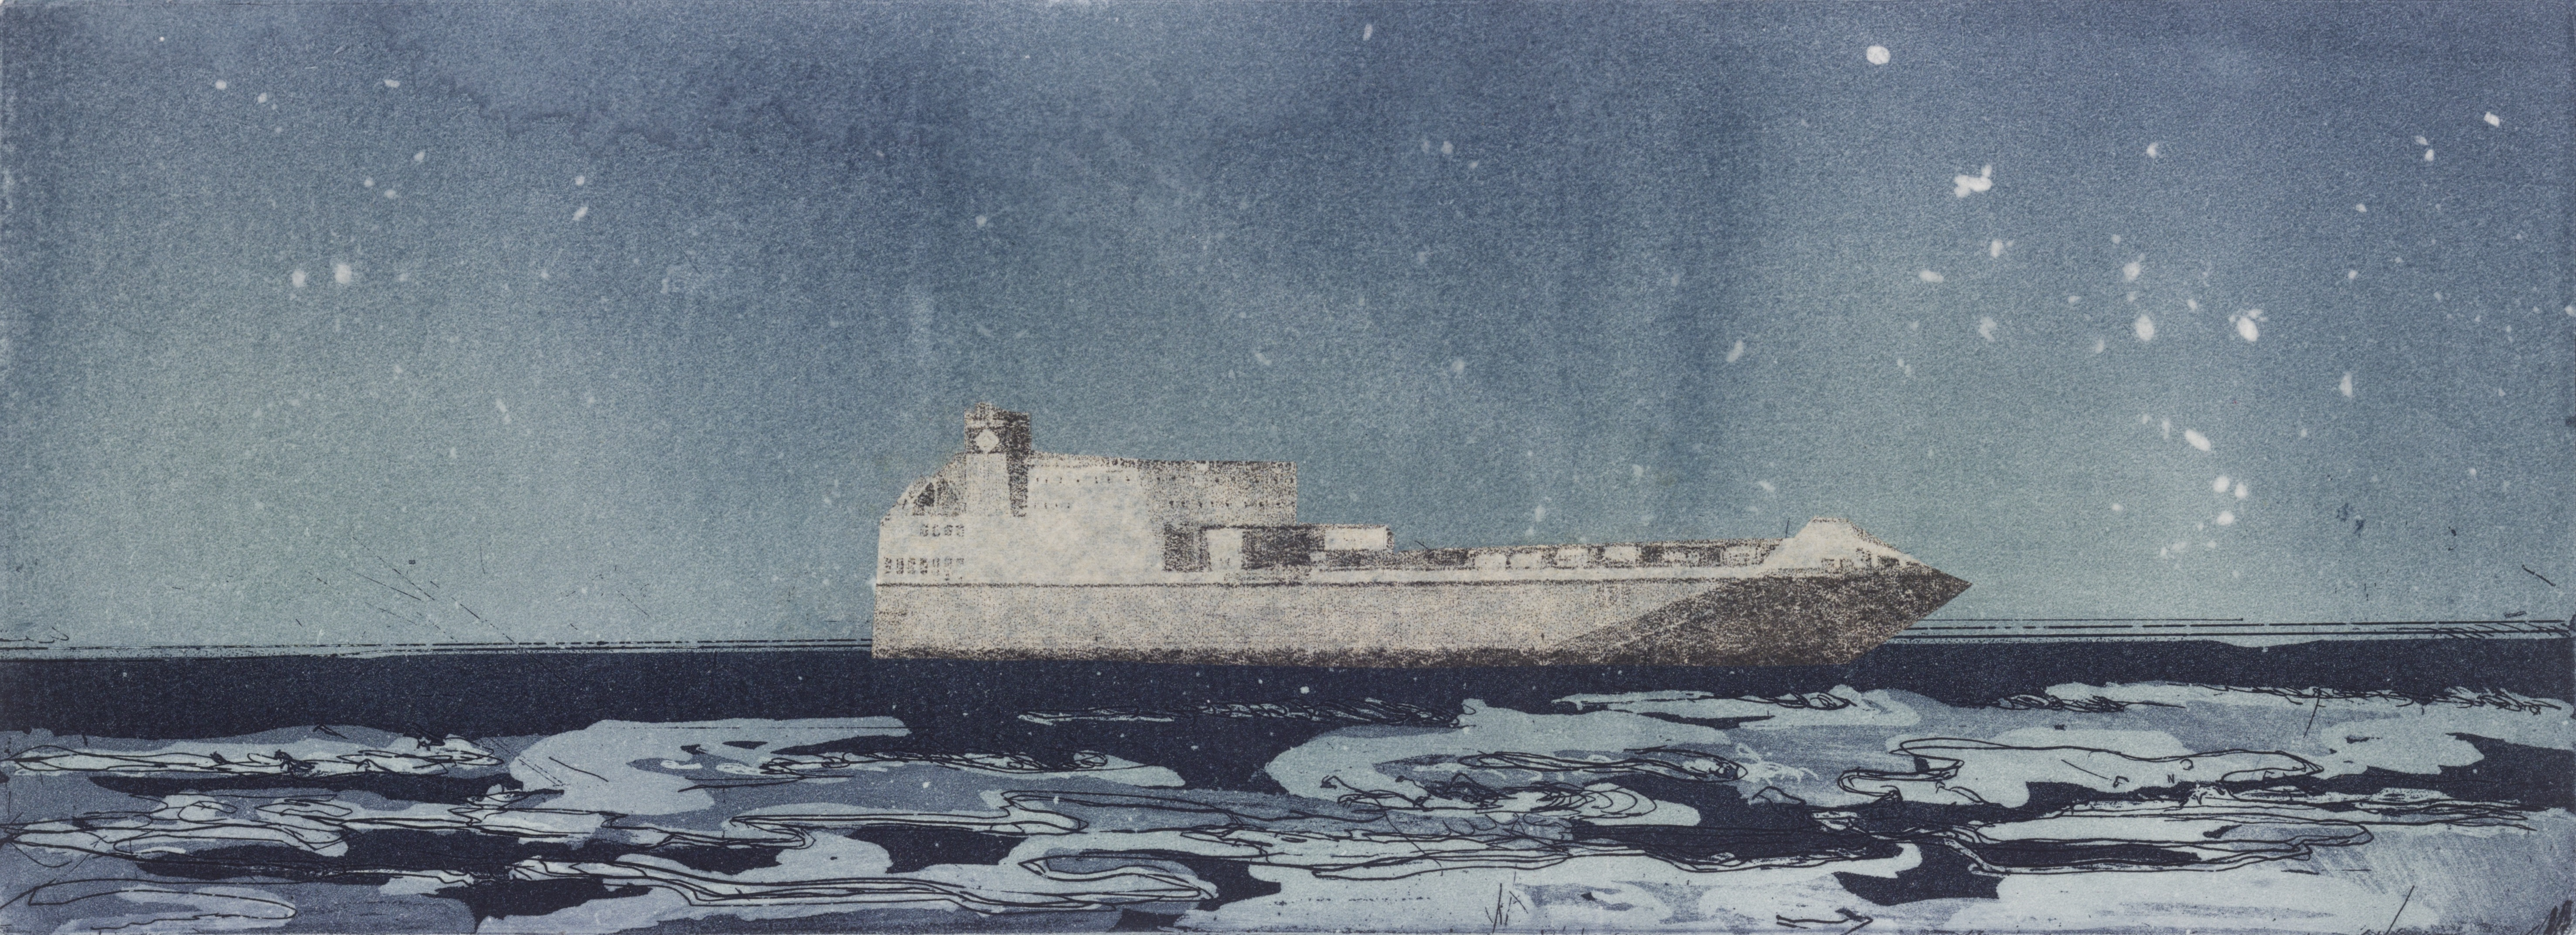 Image of a ferry by artist Linda Uhlemann